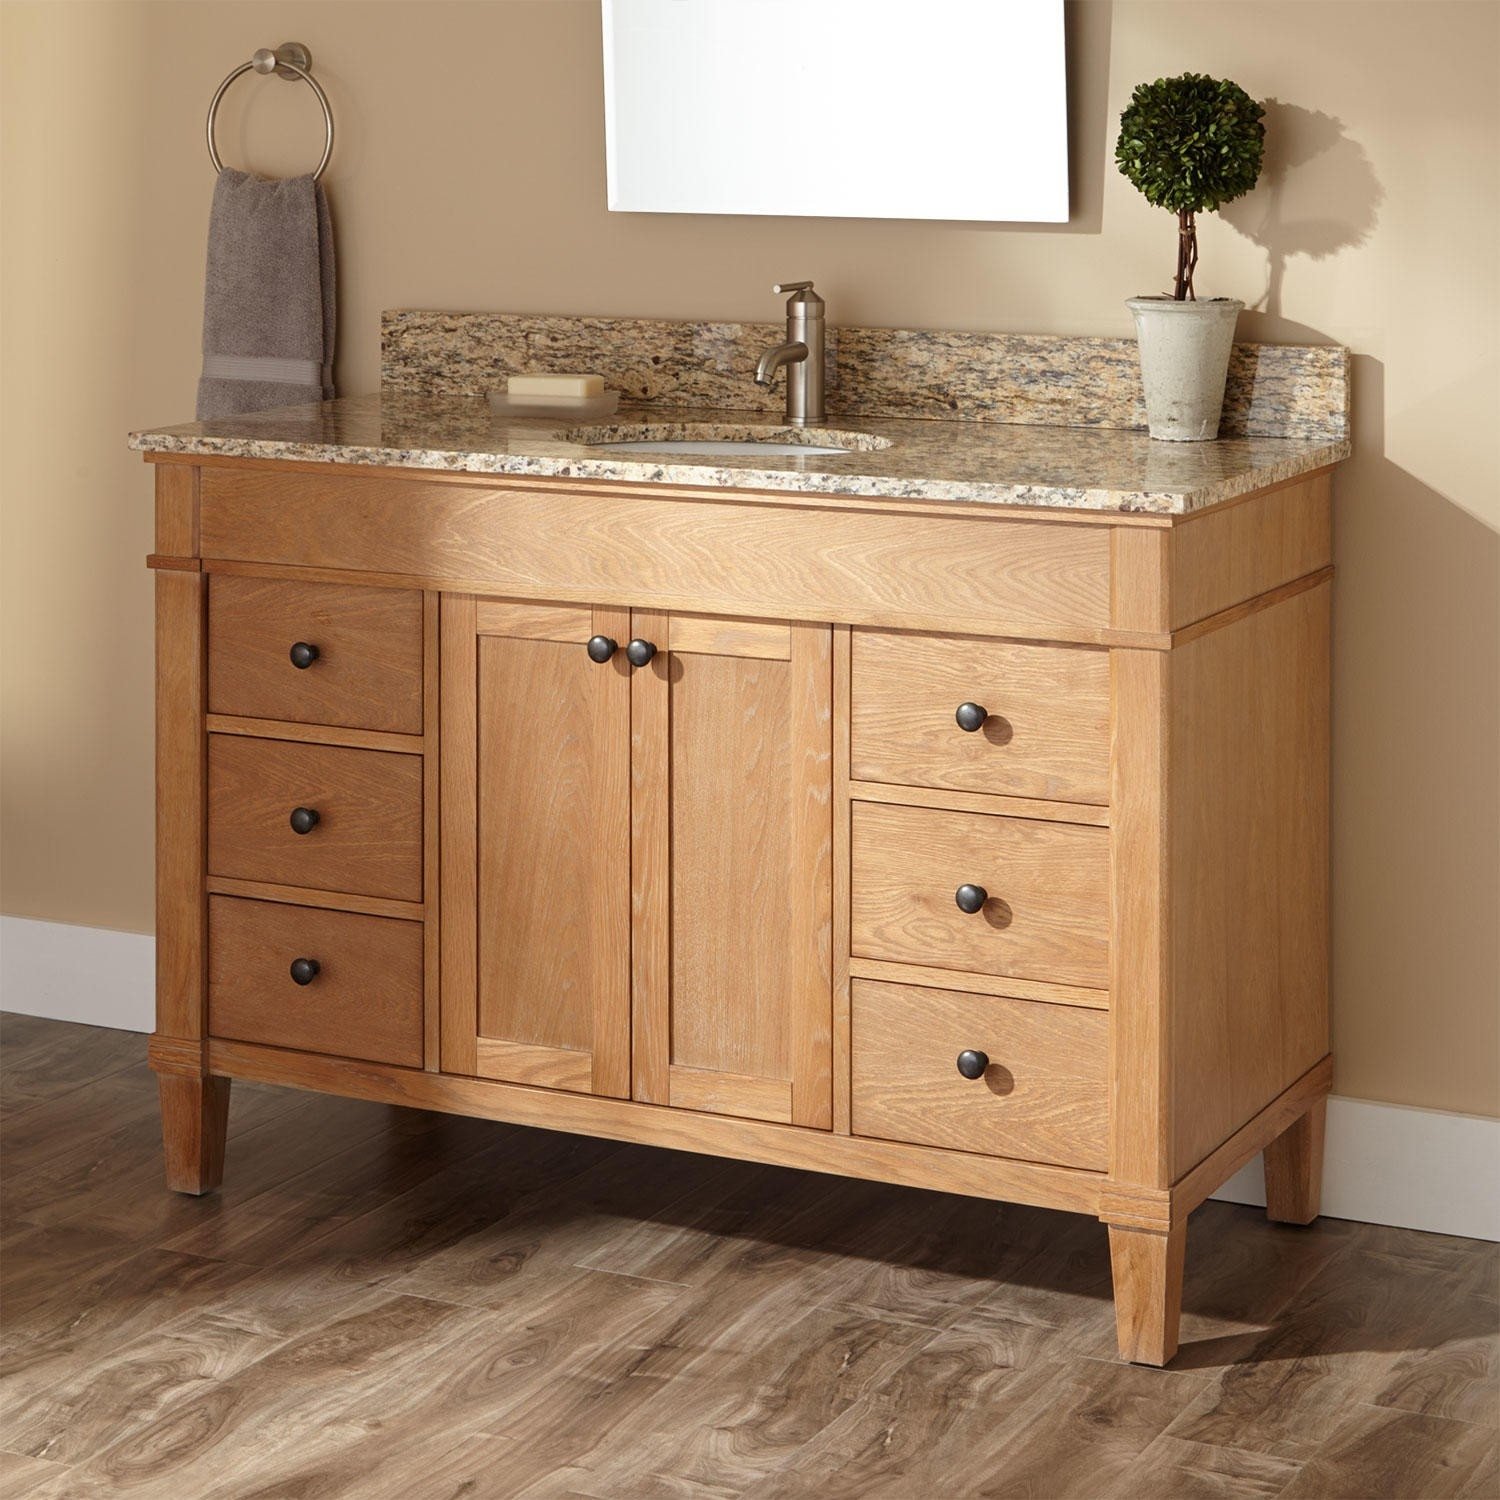 Bathroom Vanity 45 Inches Wide